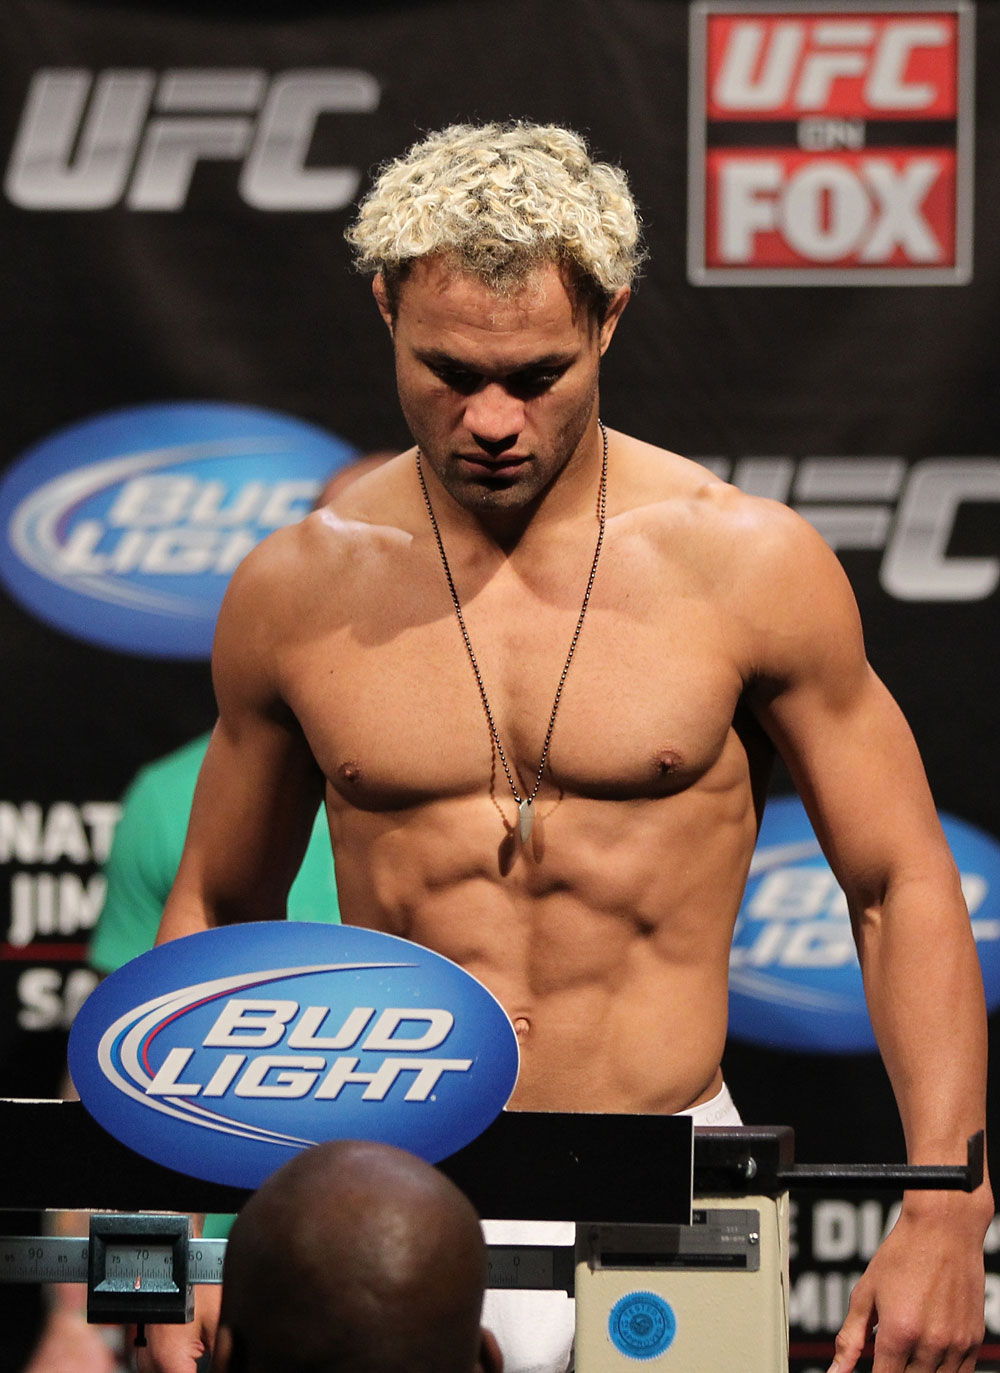 EAST RUTHERFORD, NJ - MAY 04:  Josh Koscheck weighs in during the UFC on FOX official weigh in at Izod Center on May 4, 2012 in East Rutherford, New Jersey.  (Photo by Josh Hedges/Zuffa LLC/Zuffa LLC via Getty Images)